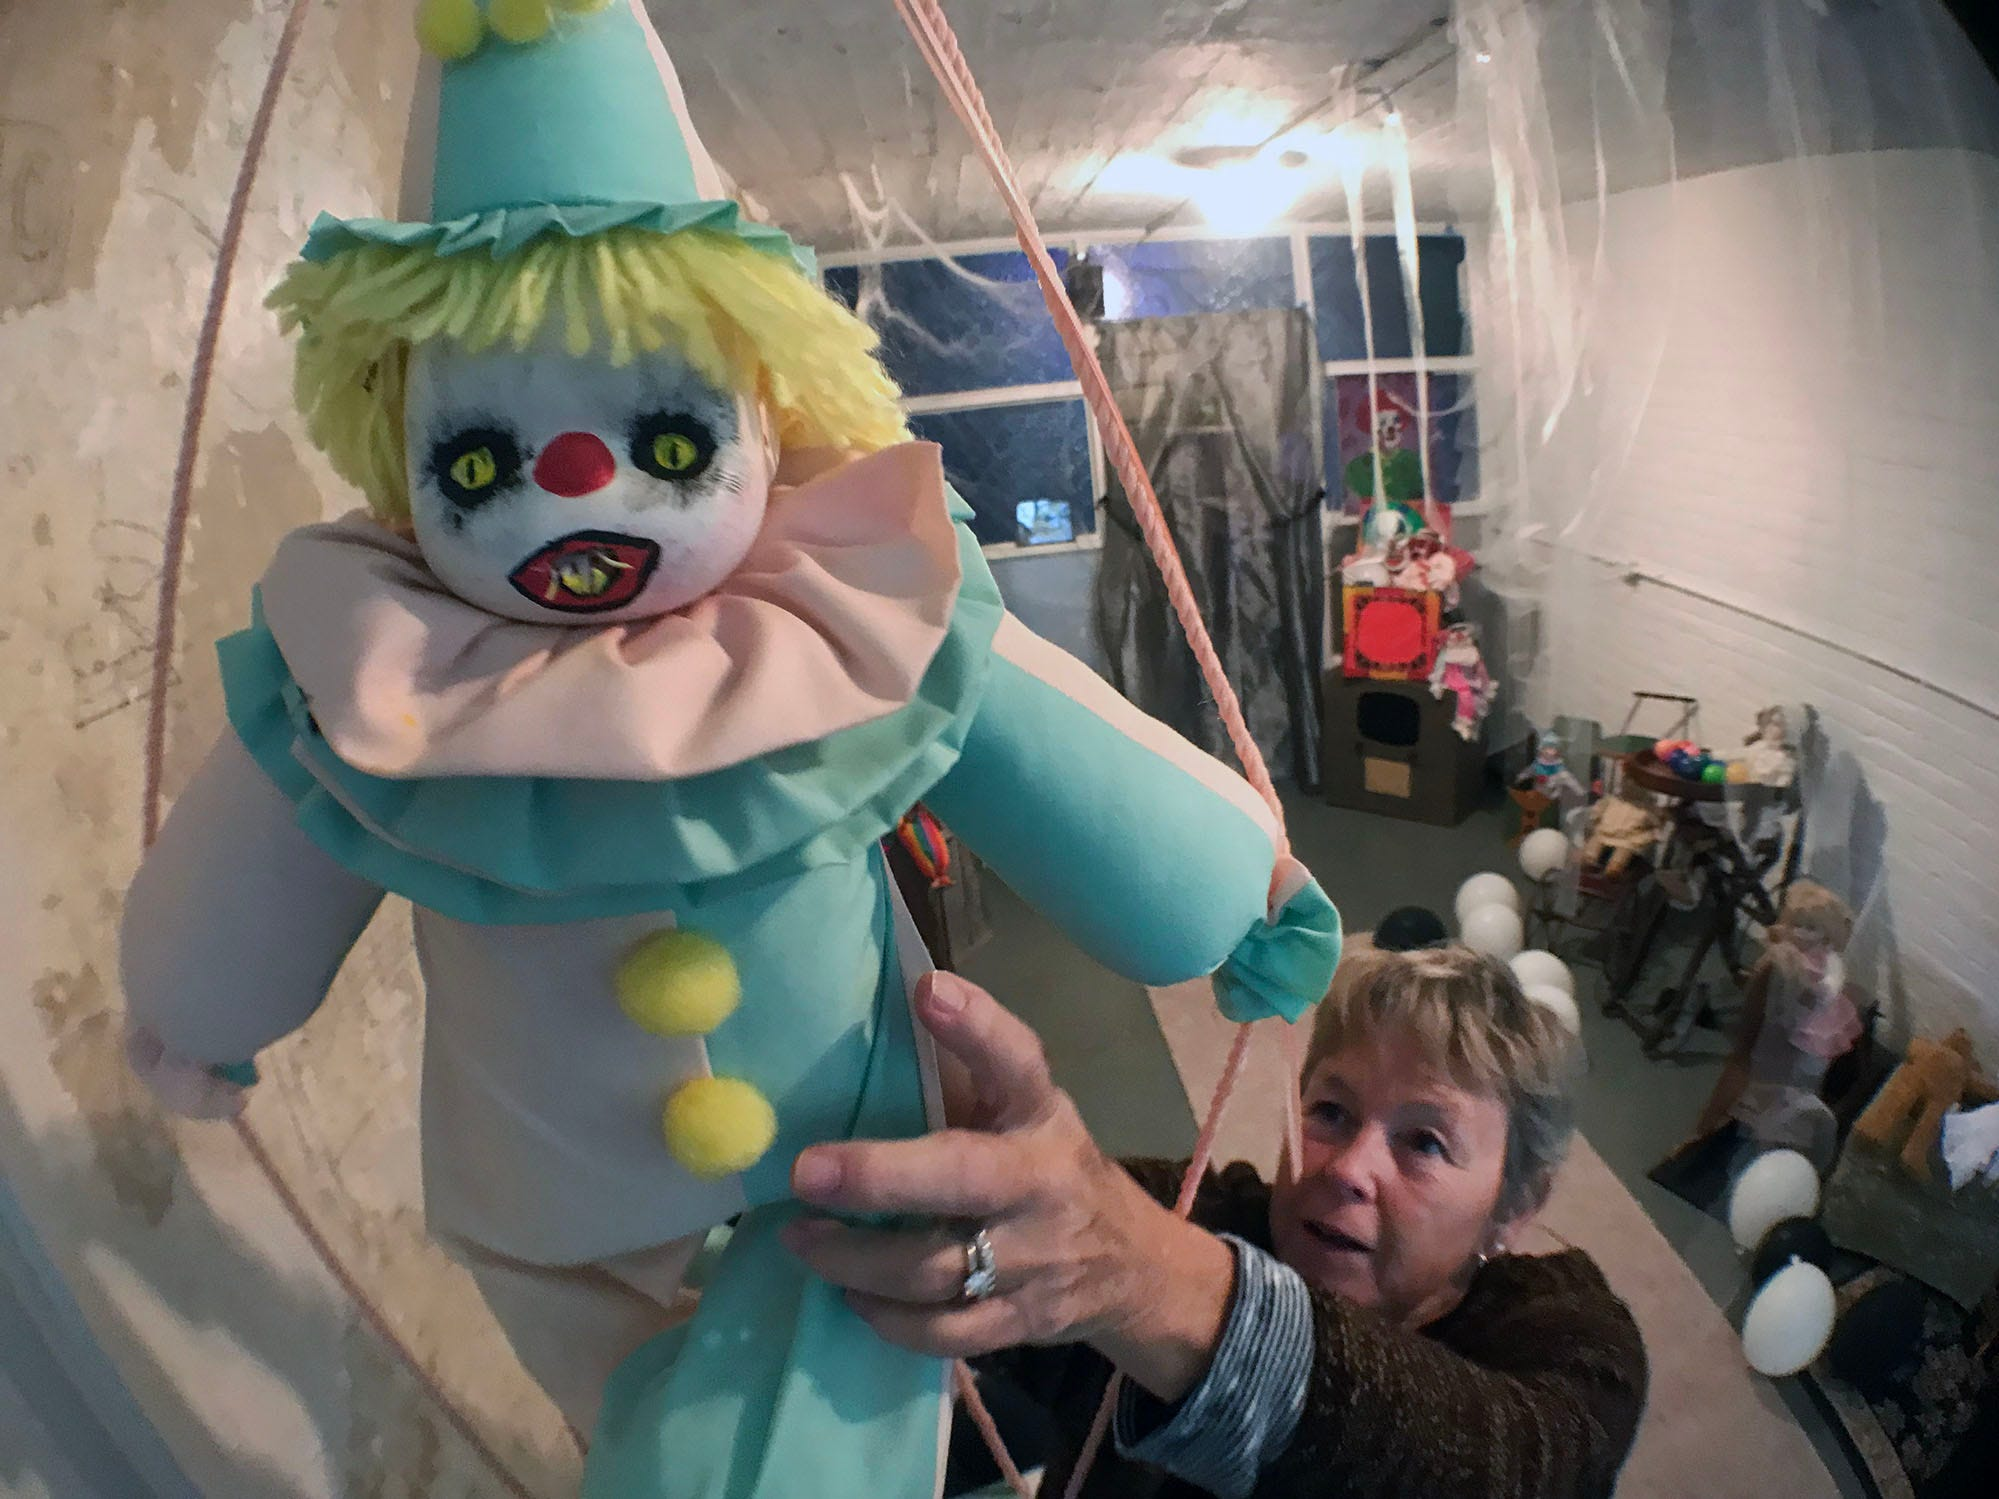 Cathy Cellucci sets up a section which features cannibal clowns Tuesday, October 24, 2018 at the Old Jail. Franklin County Historical Society is bringing back its once popular fundraiser, halloween at the Old Jail. The haunted walk-thru of the Old Jail, 175 East King Street, is open 7-10p.m. Friday and Saturday, Oct.26-27 and November 2-3. Admission is $10 for adults and $6 for children 12 and under. Children must be accompanied by an adult.